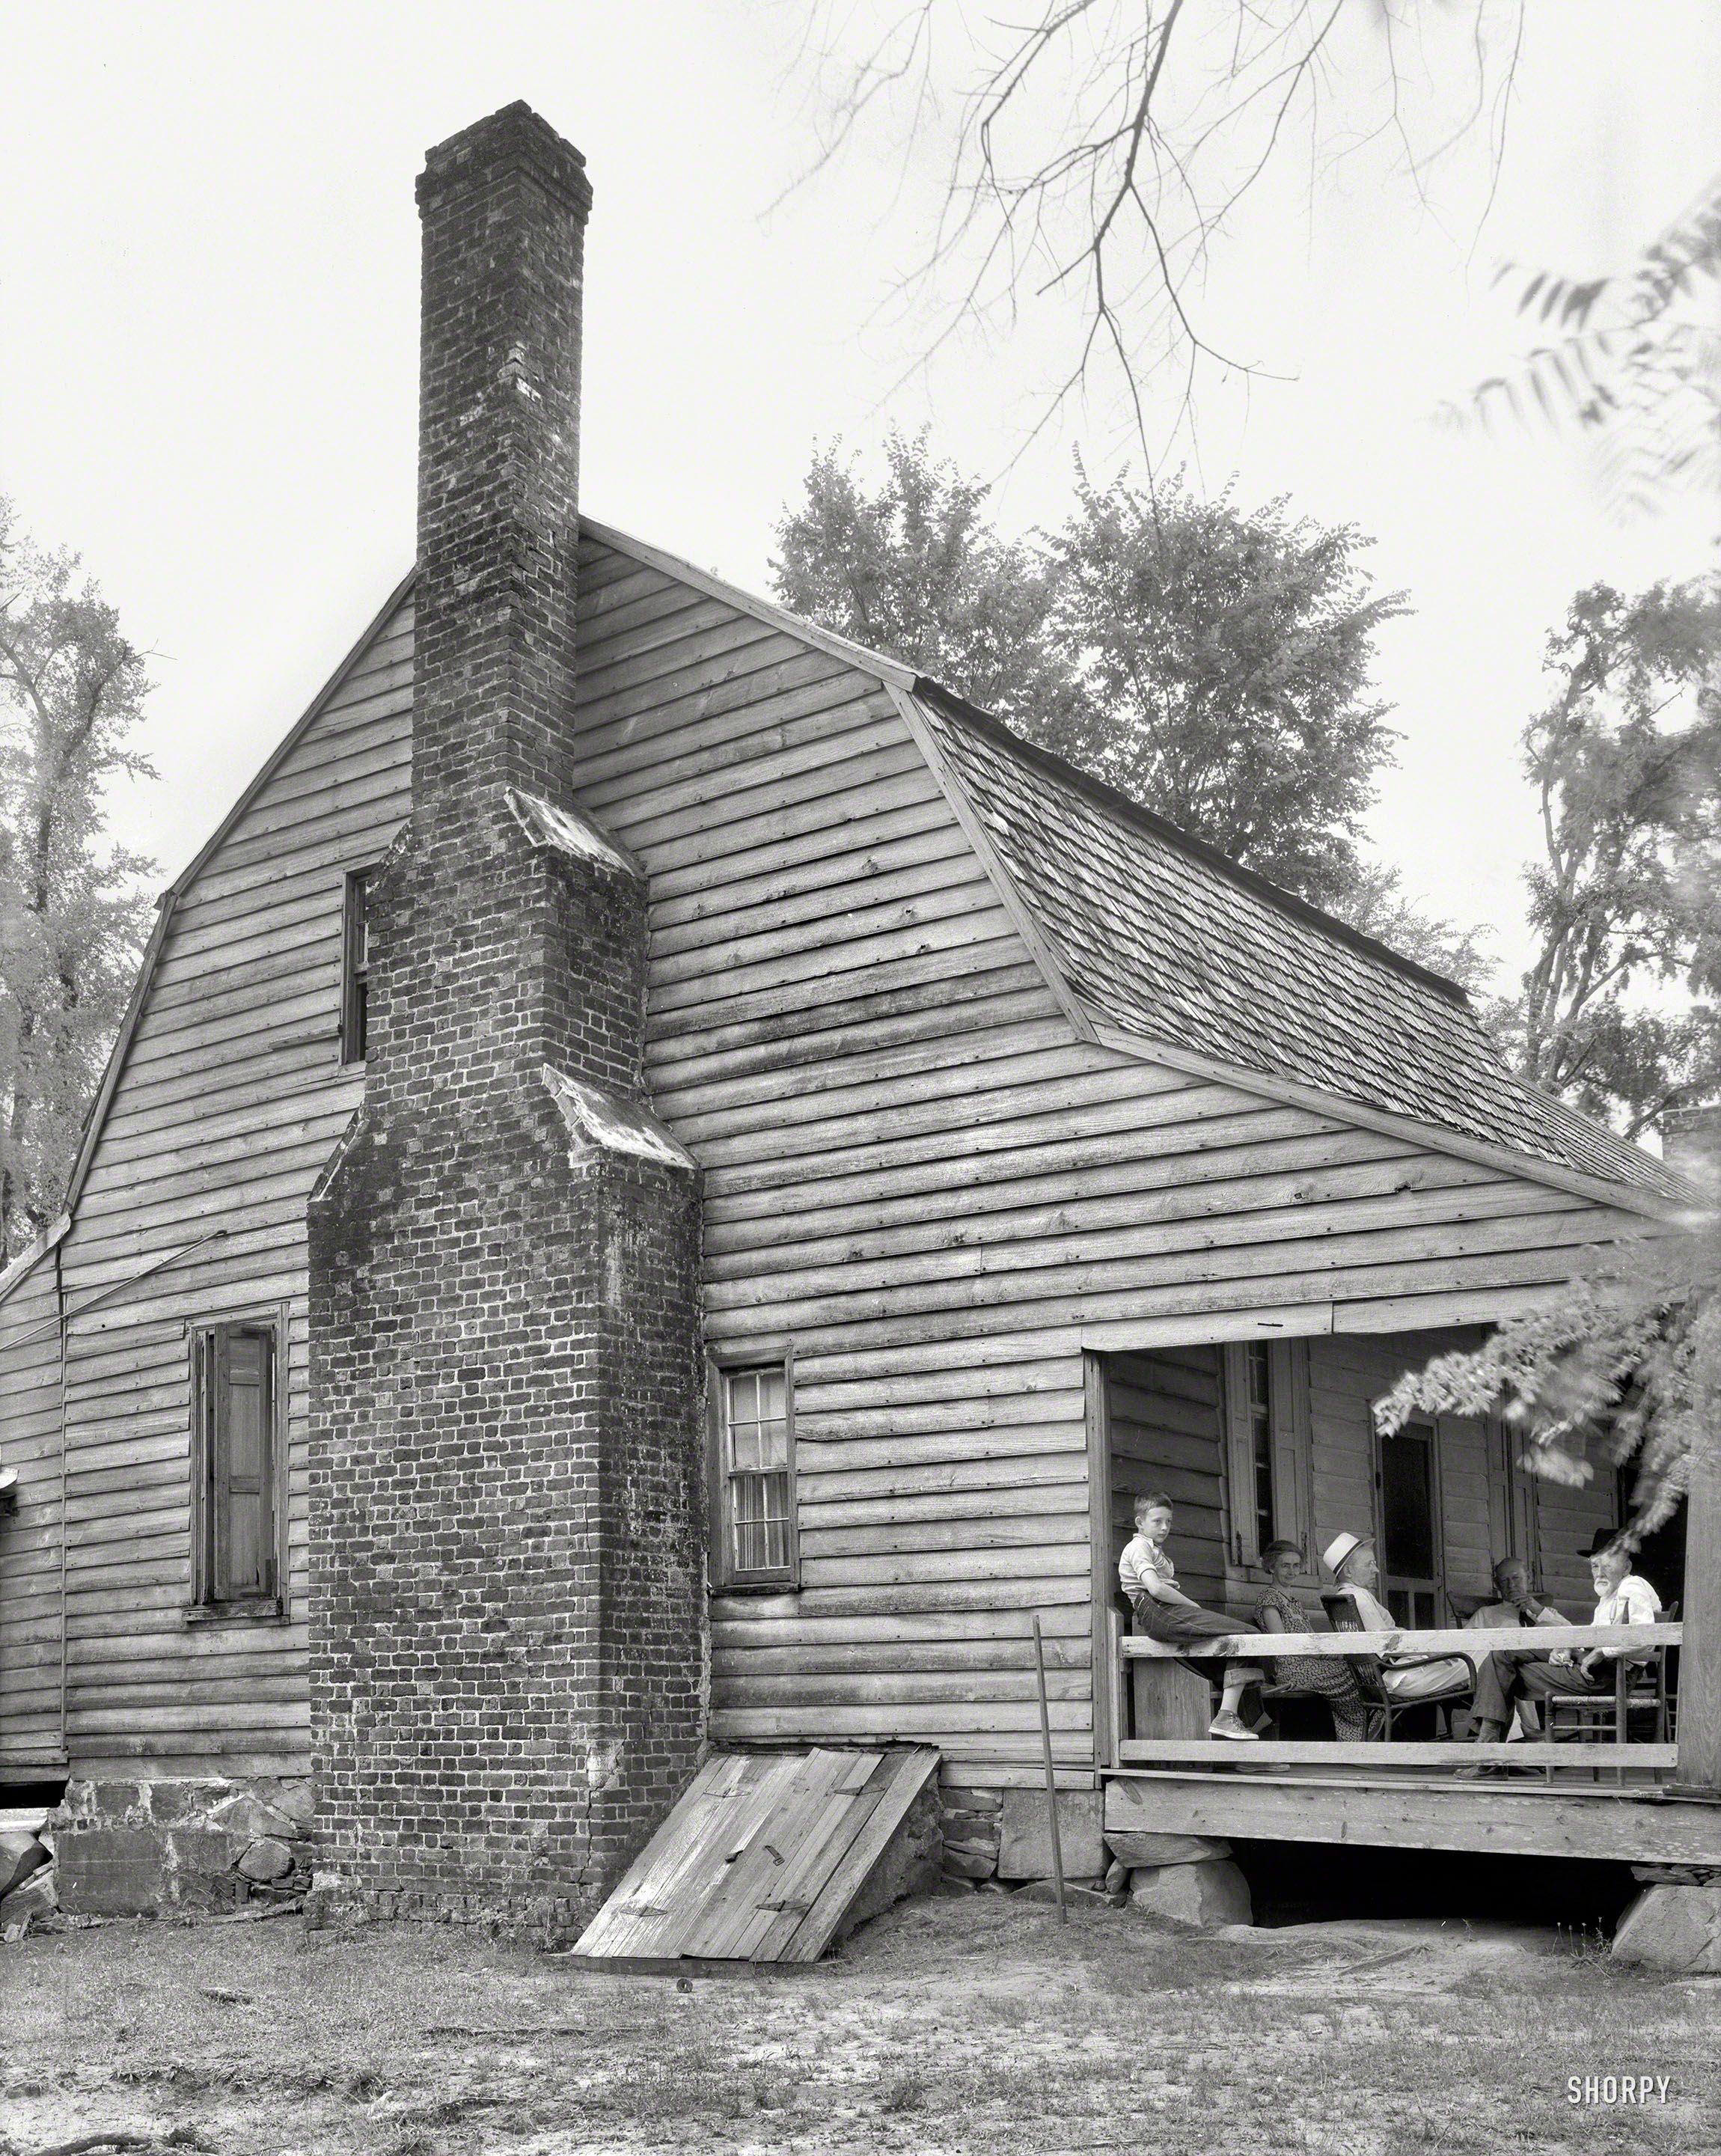 riddick house in hertford county north carolina places across